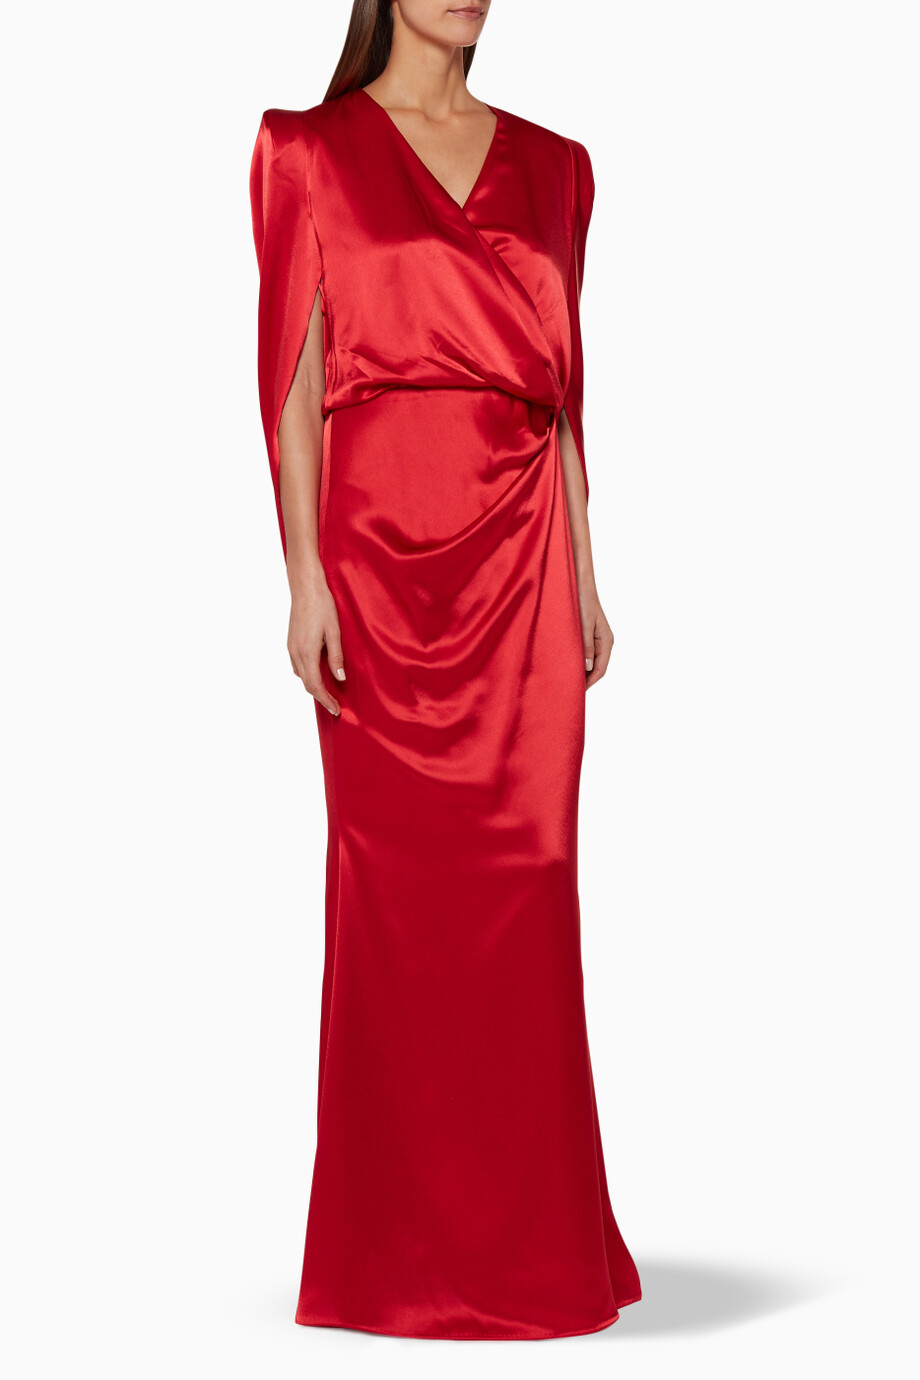 20b5a6952a2 Shop Talbot Runhof Red Red Draped-Back Gown for Women